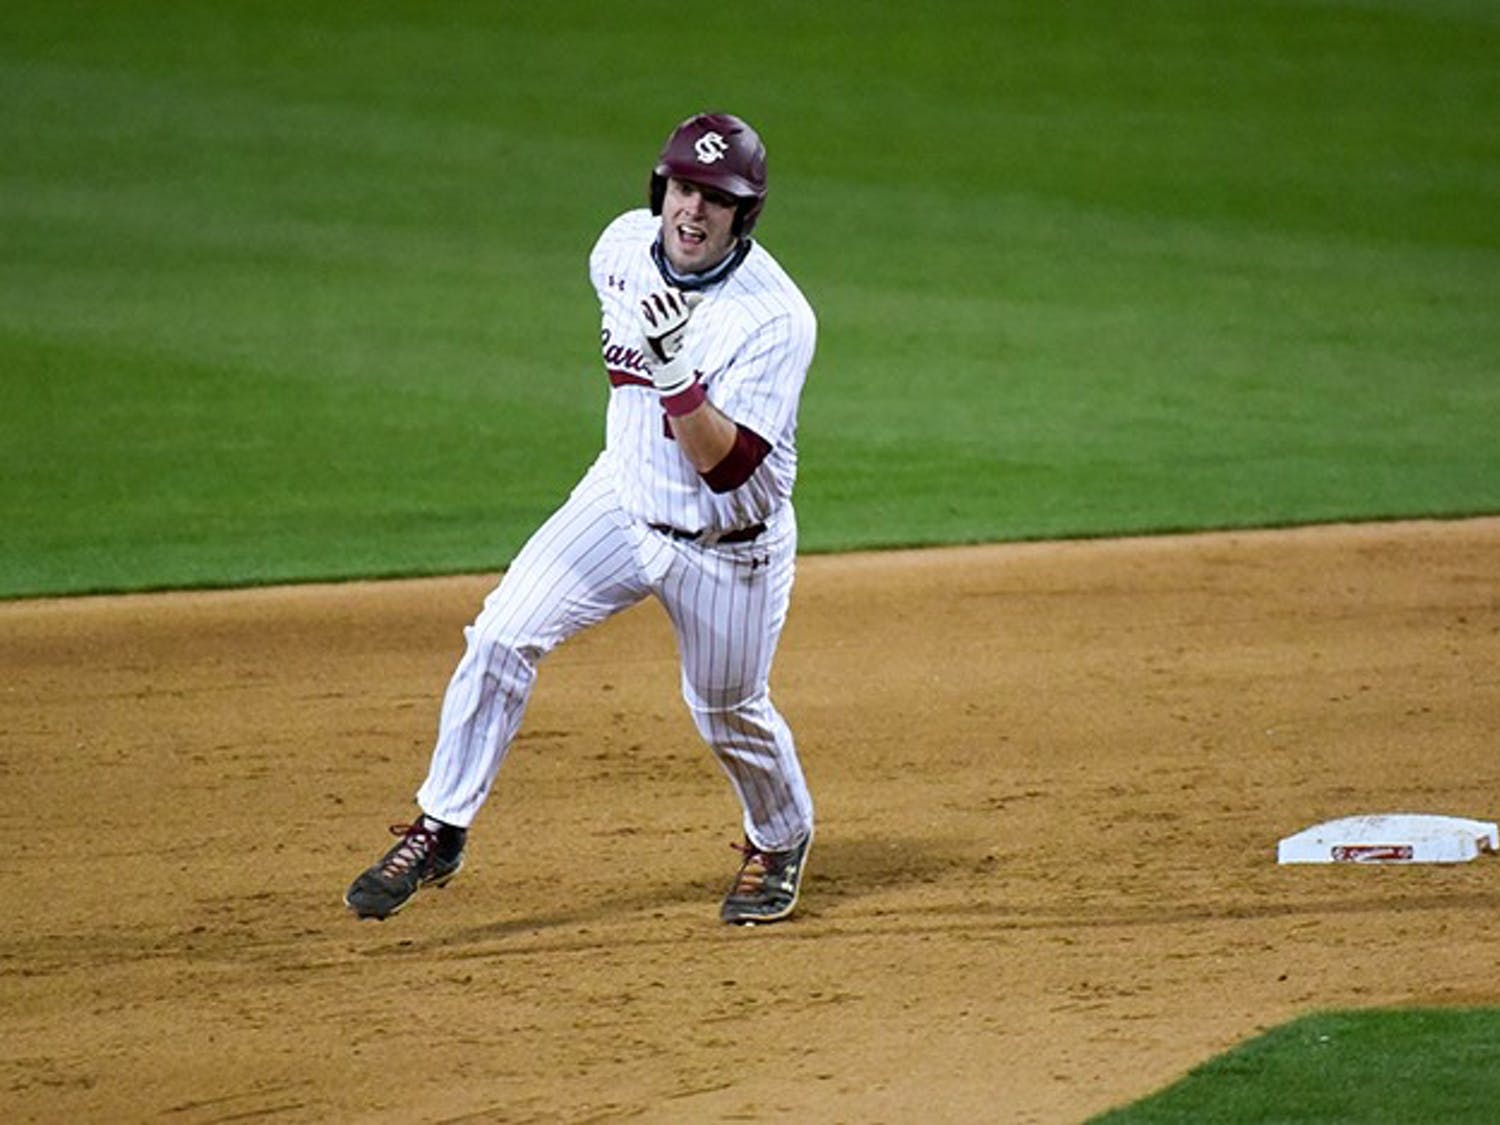 Junior infielder/catcher Wes Clarke rounds the bases during a game. Clarke currently has nine home-runs in 14 games this season.